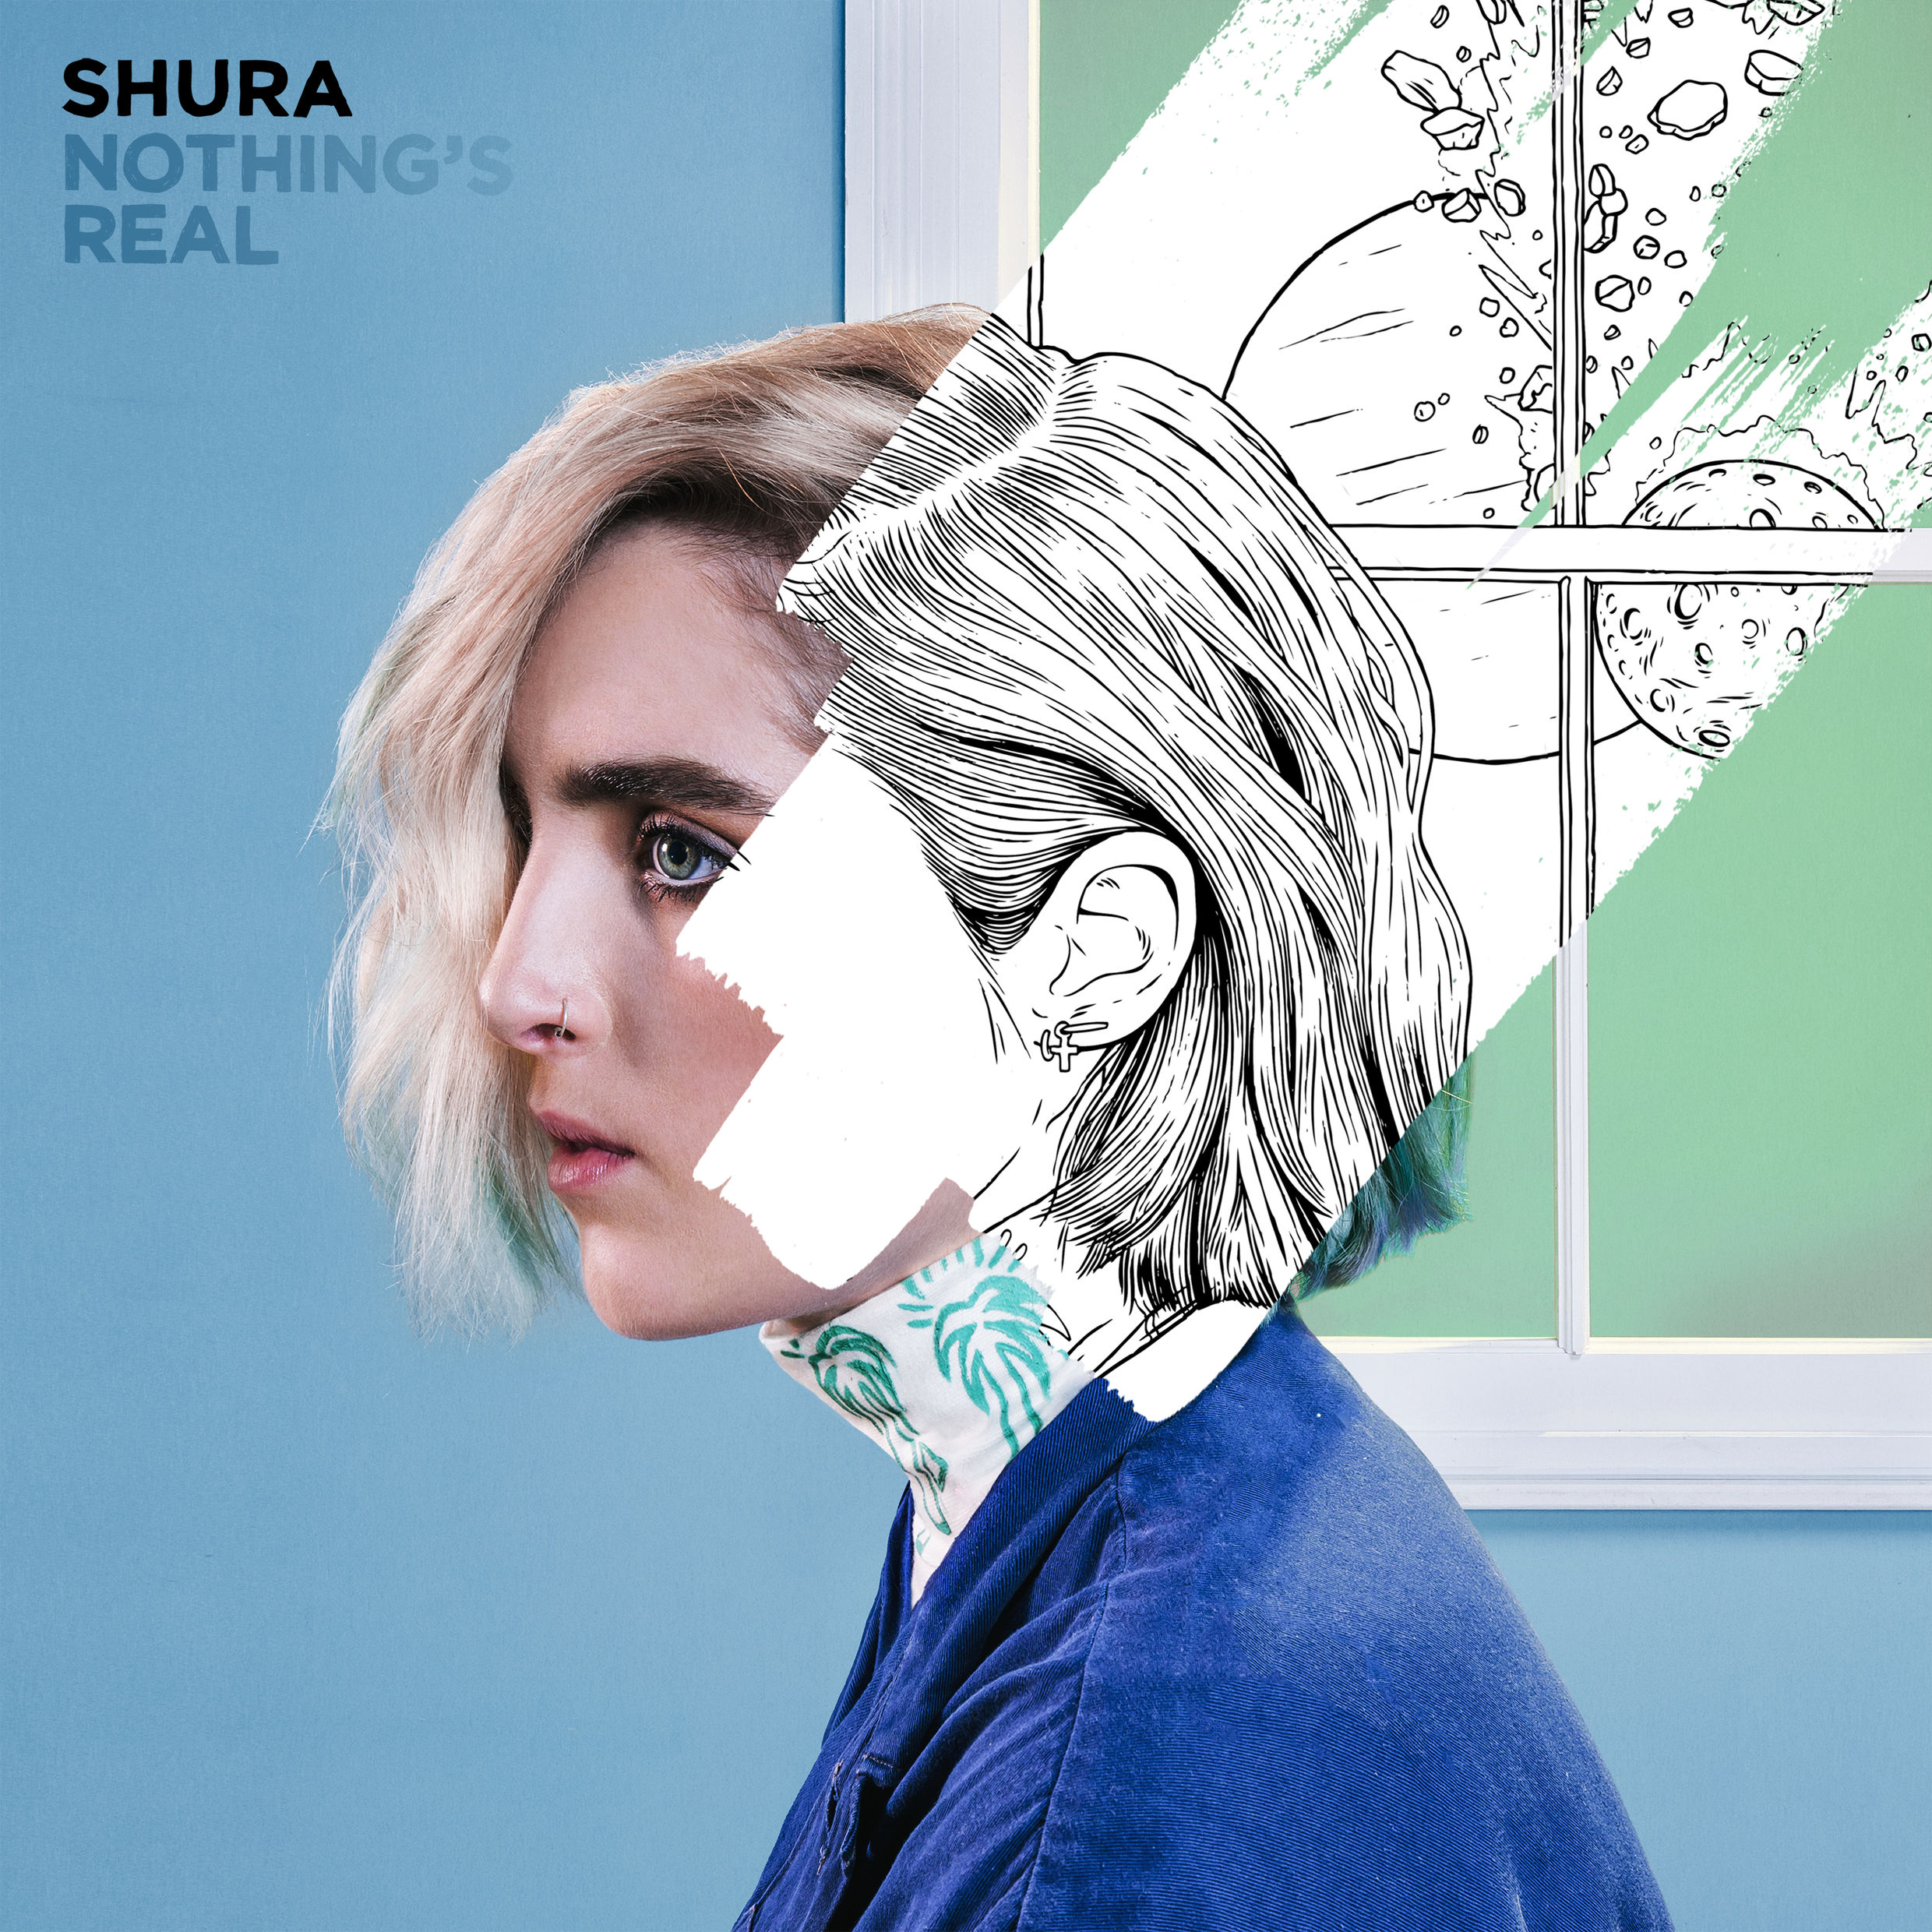 Shura-Nothings-Real-2016-2480x2480